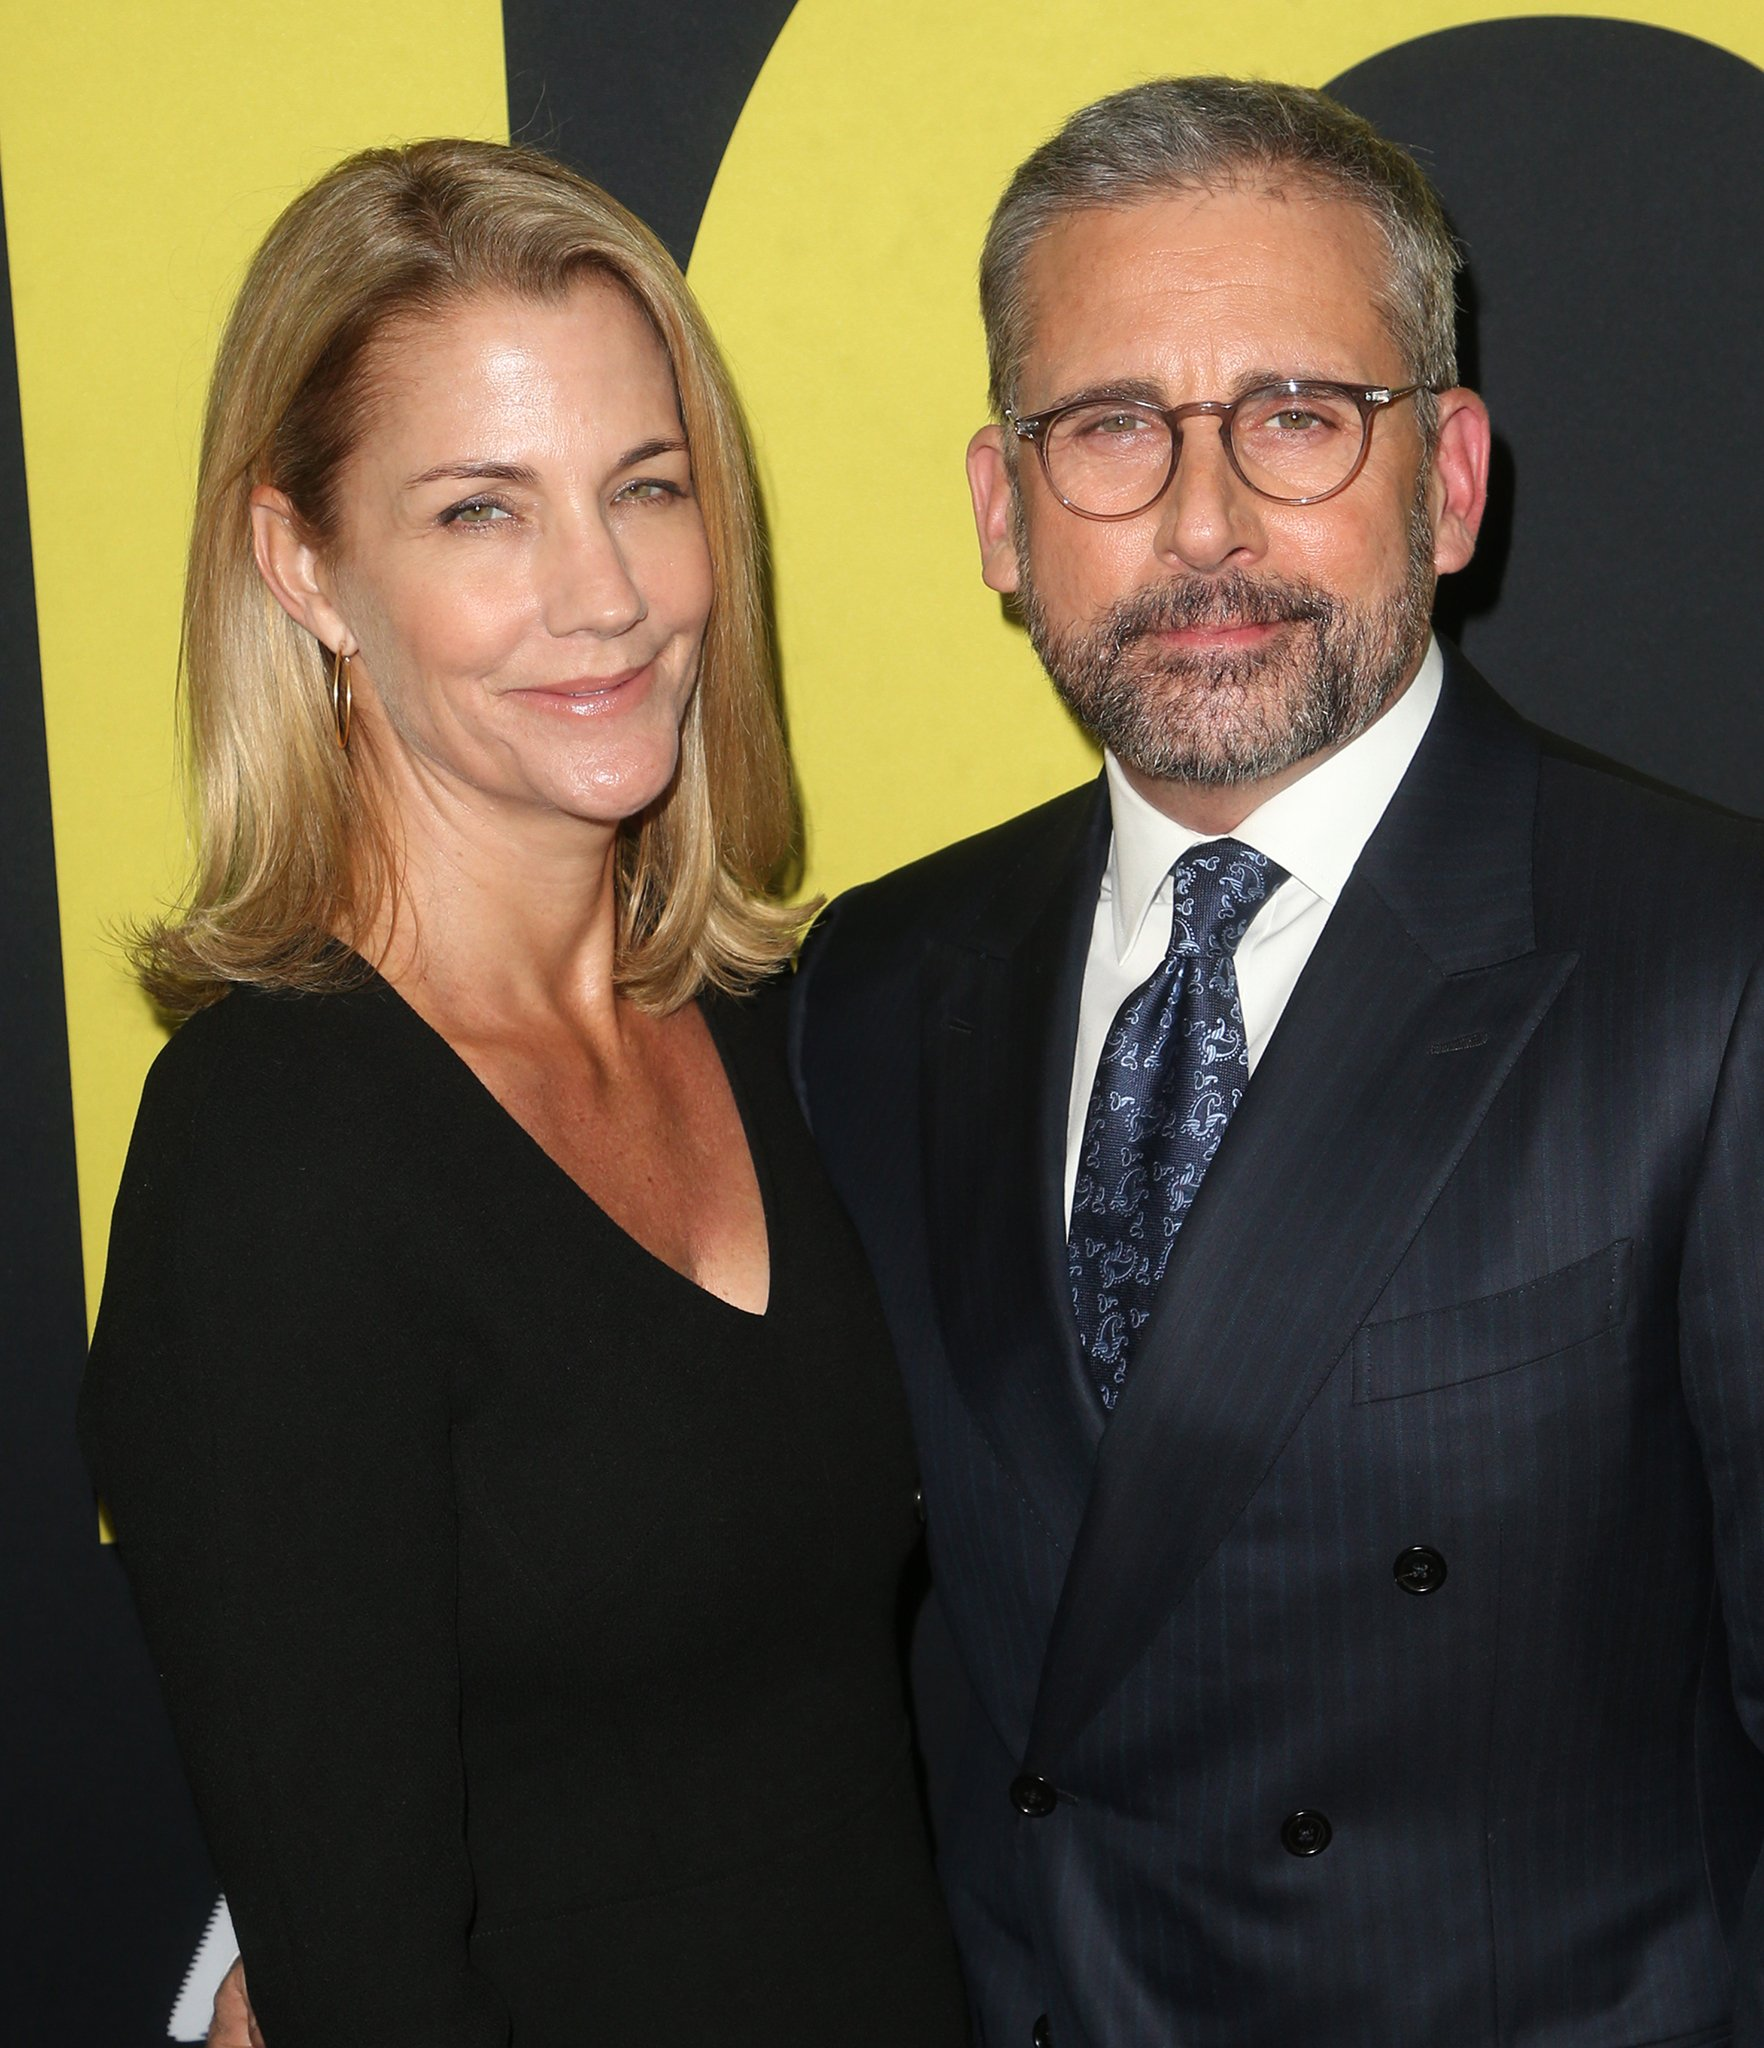 Steve Carell has been married to his wife Nancy Walls for over two decades